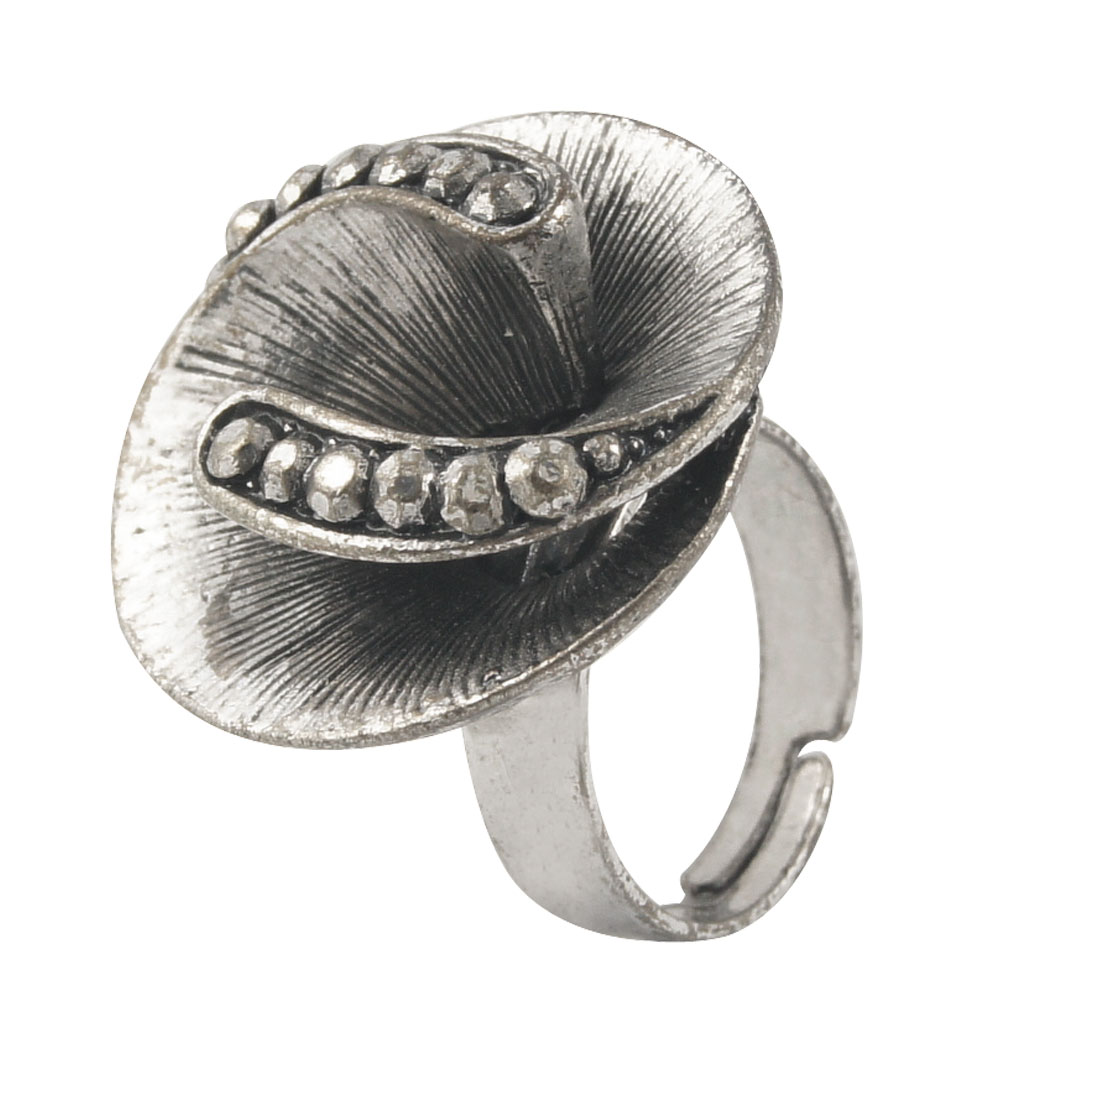 Gray Big Flower Rhinestone Accent Finger Ring US 7 for Lady